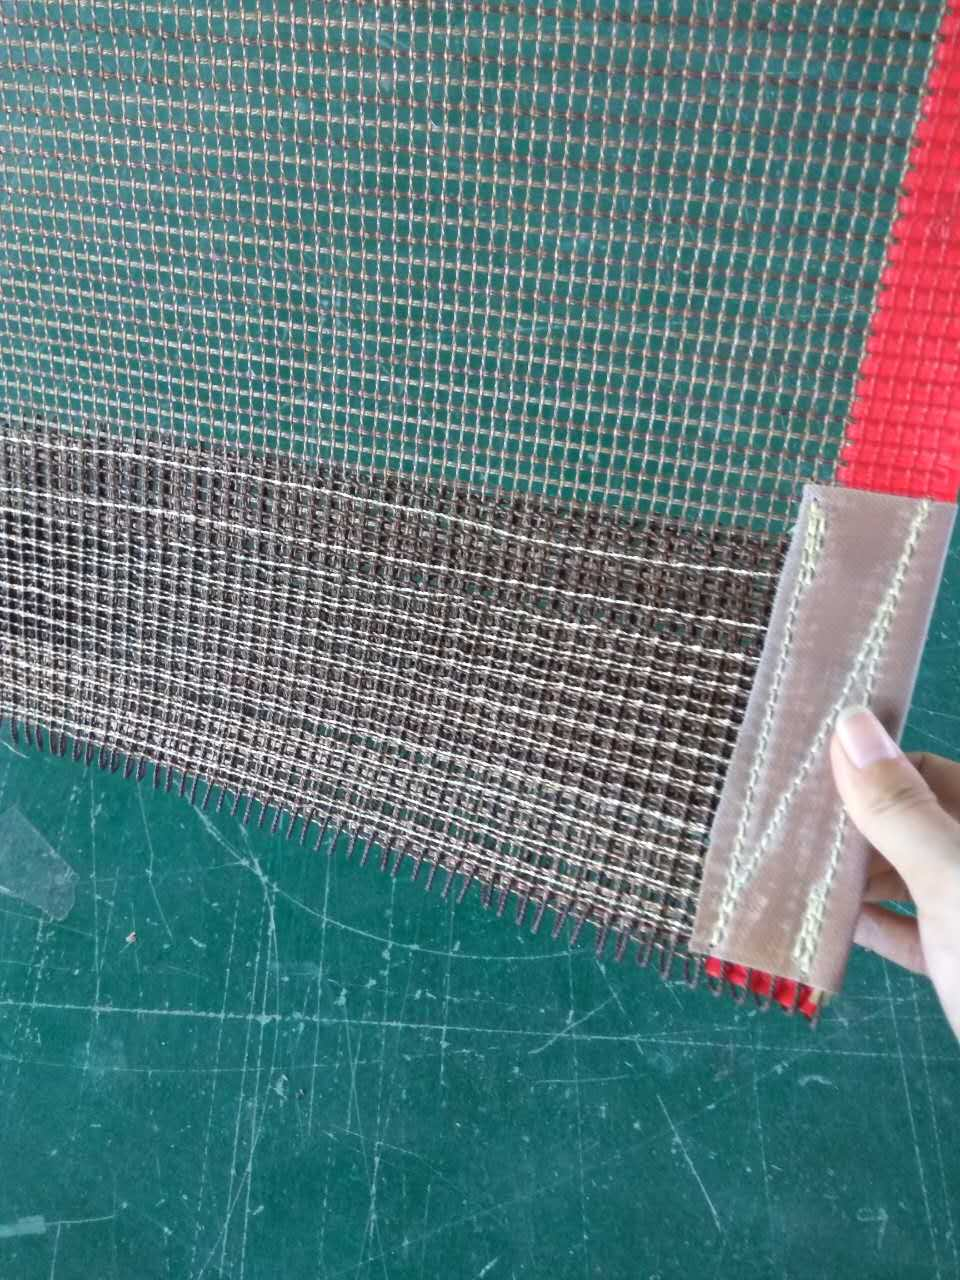 Teflon coated fiberglass open mesh conveyor belt